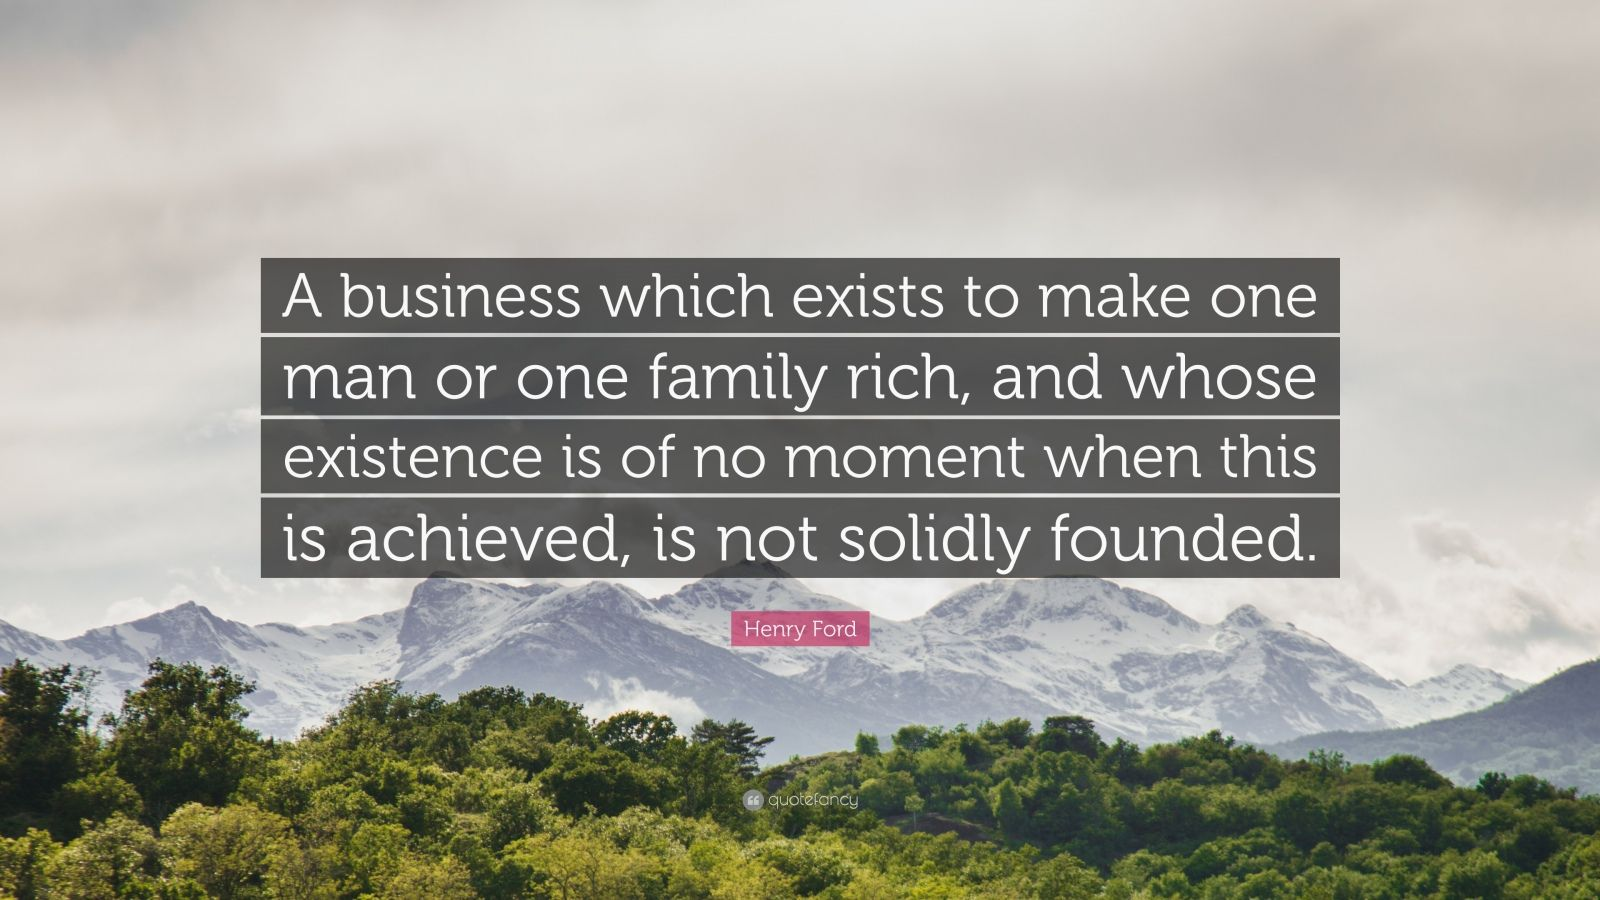 """Henry Ford Quote: """"A business which exists to make one man or one family rich, and whose existence is of no moment when this is achieved, is not solidly founded."""""""